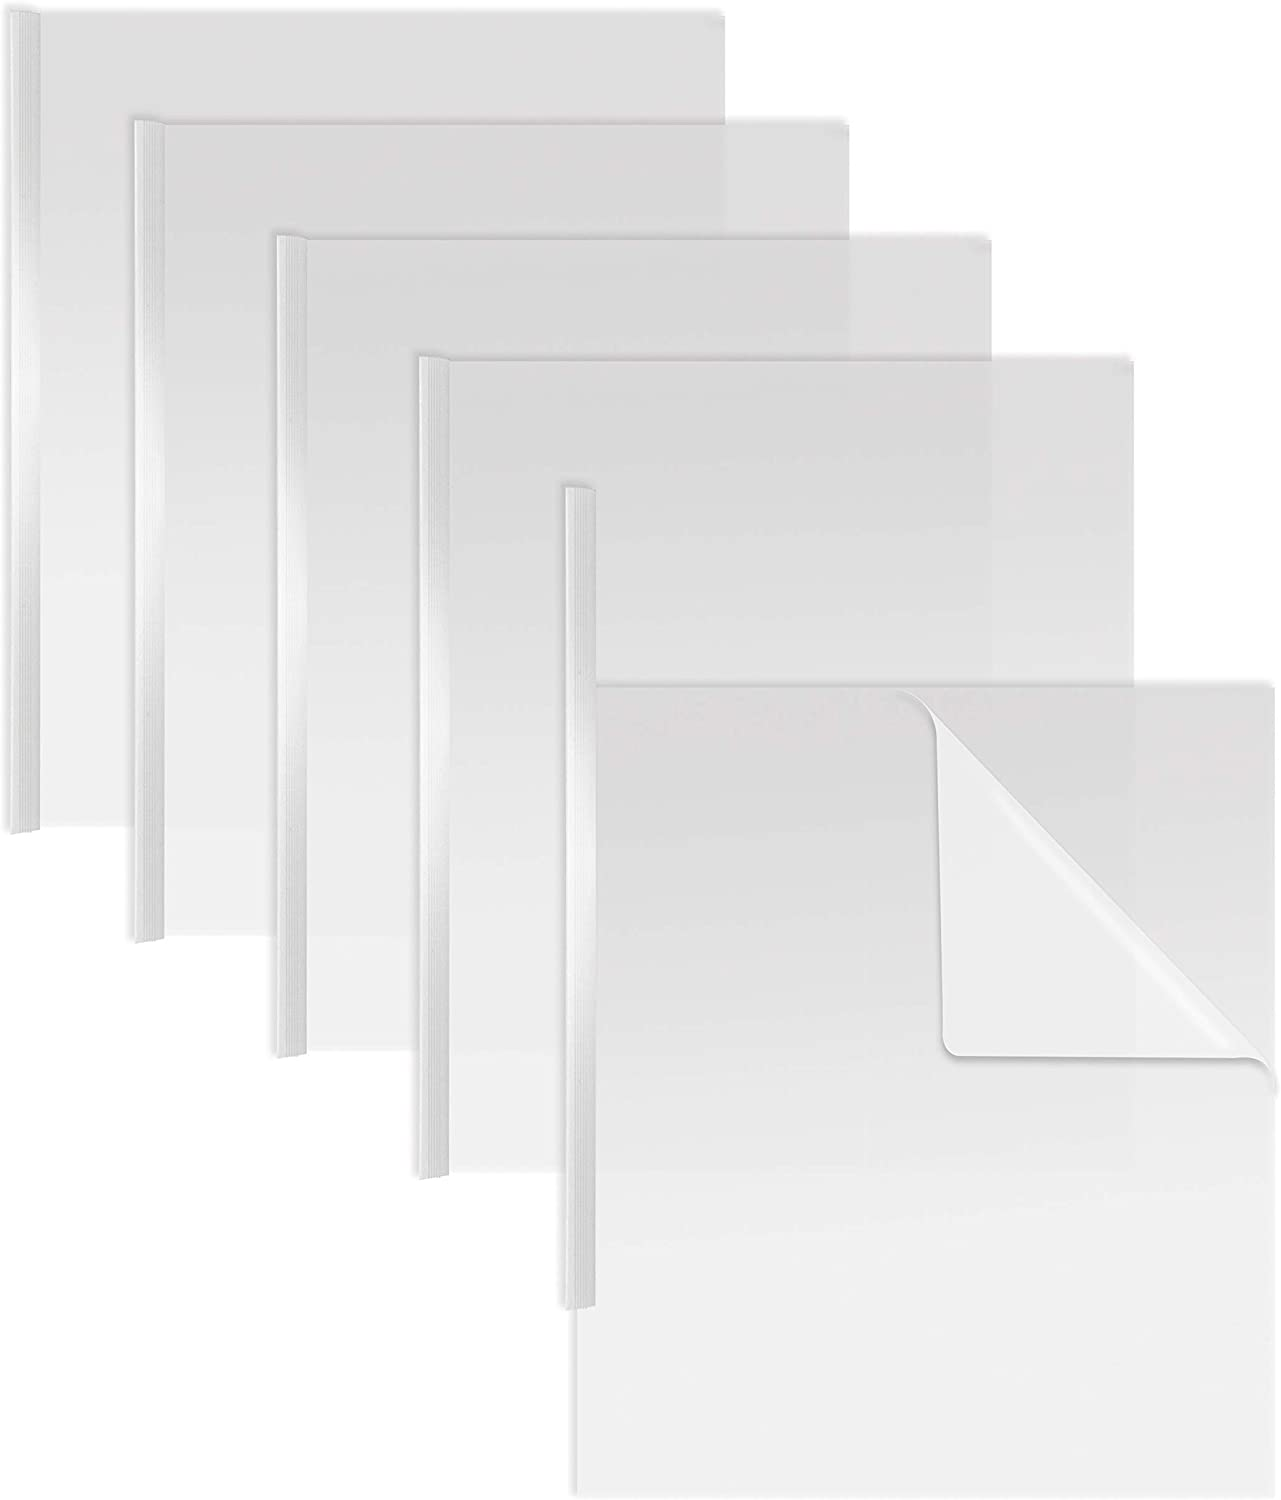 Sliding Bar Clear Report Covers, 50 Per Box, White Slider Bars, Durable 5 mil Poly Thickness, Letter Size, by Better Office Products, Transparent Report Covers with White Slider Bars, Box of 50 : Office Products